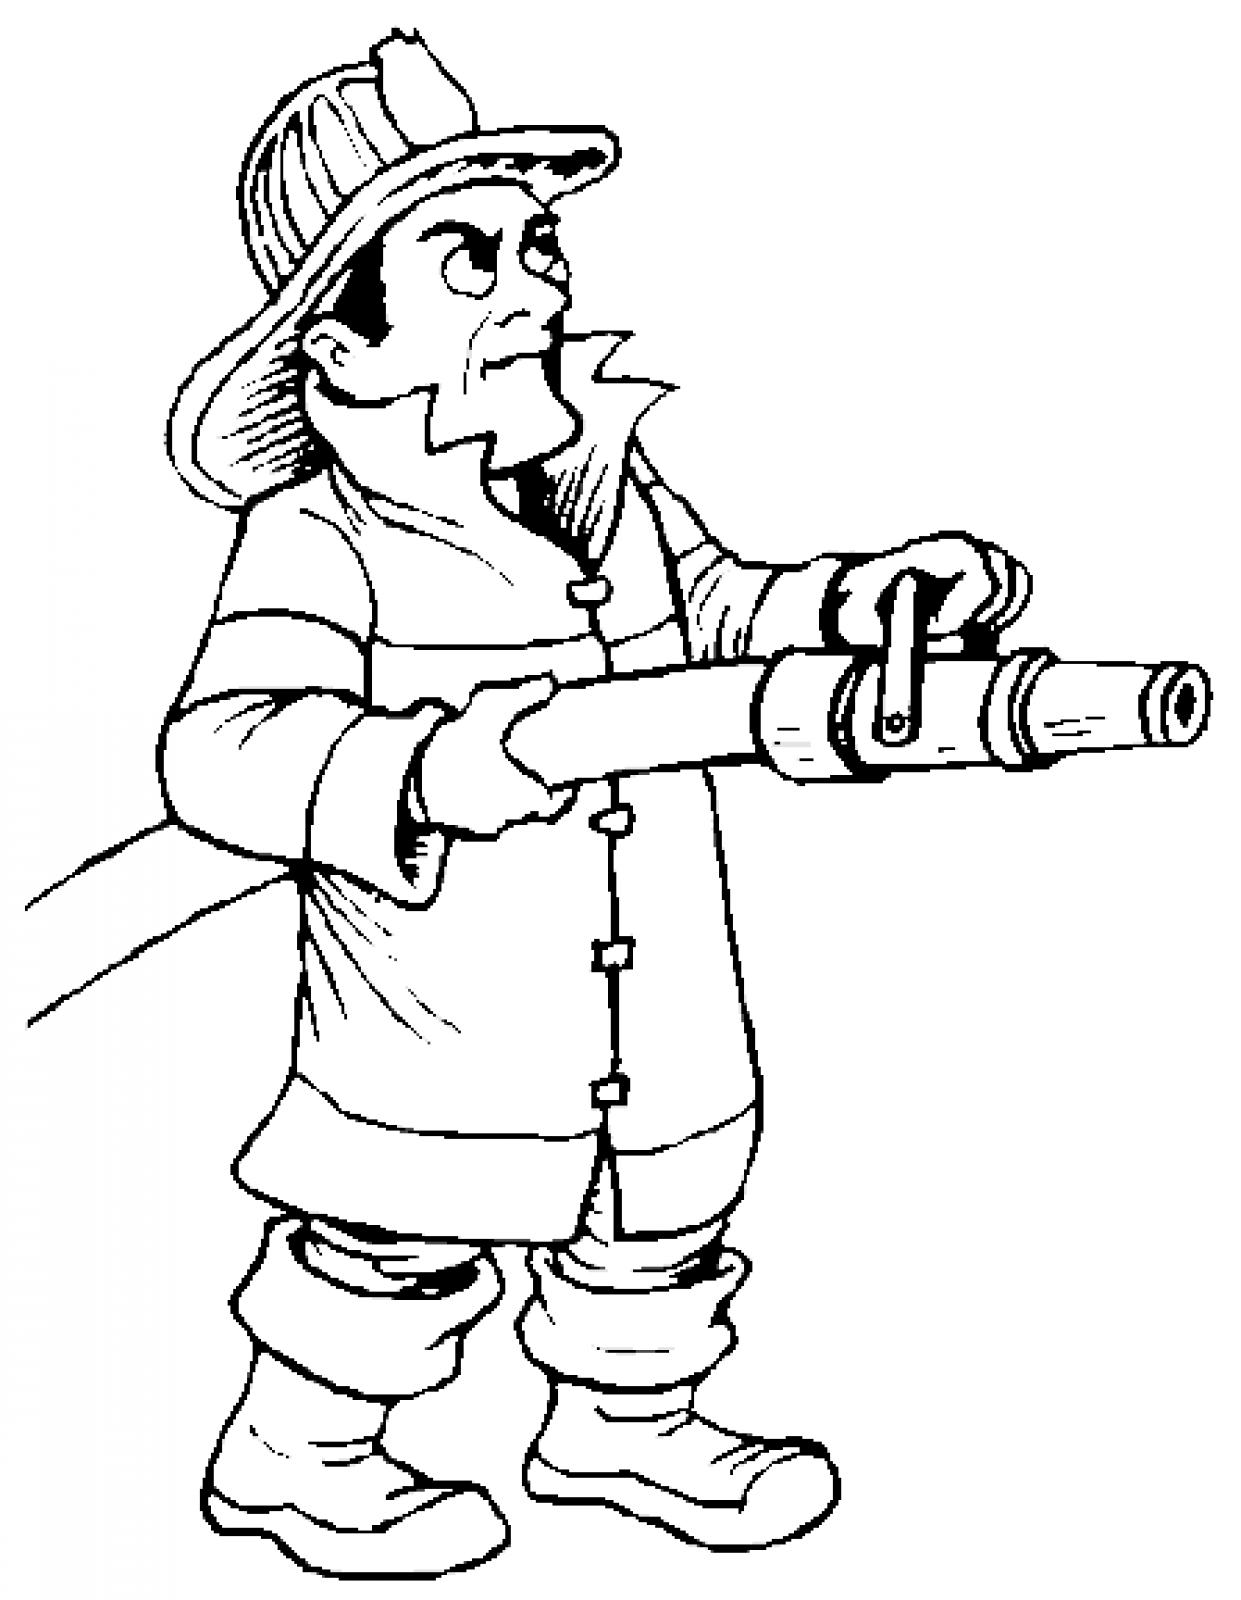 Firefighter black and white firefighter cartoon fire fighter clip.